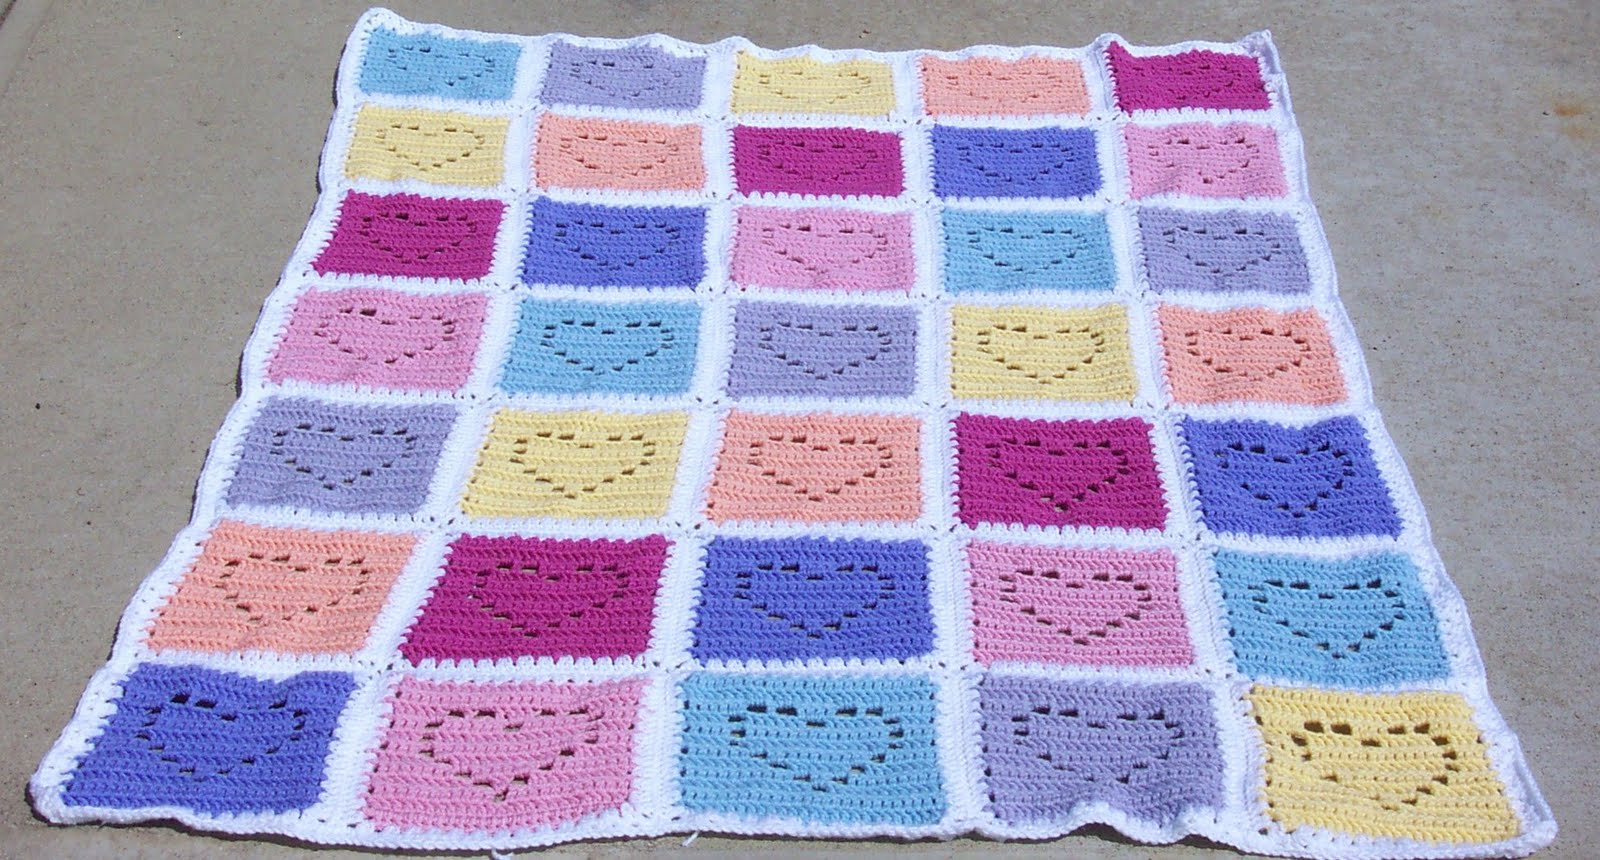 Heart Afghan Crochet Pattern Best Of Smoothfox Crochet and Knit Smoothfox S Christmas Cheer Of Top 48 Models Heart Afghan Crochet Pattern